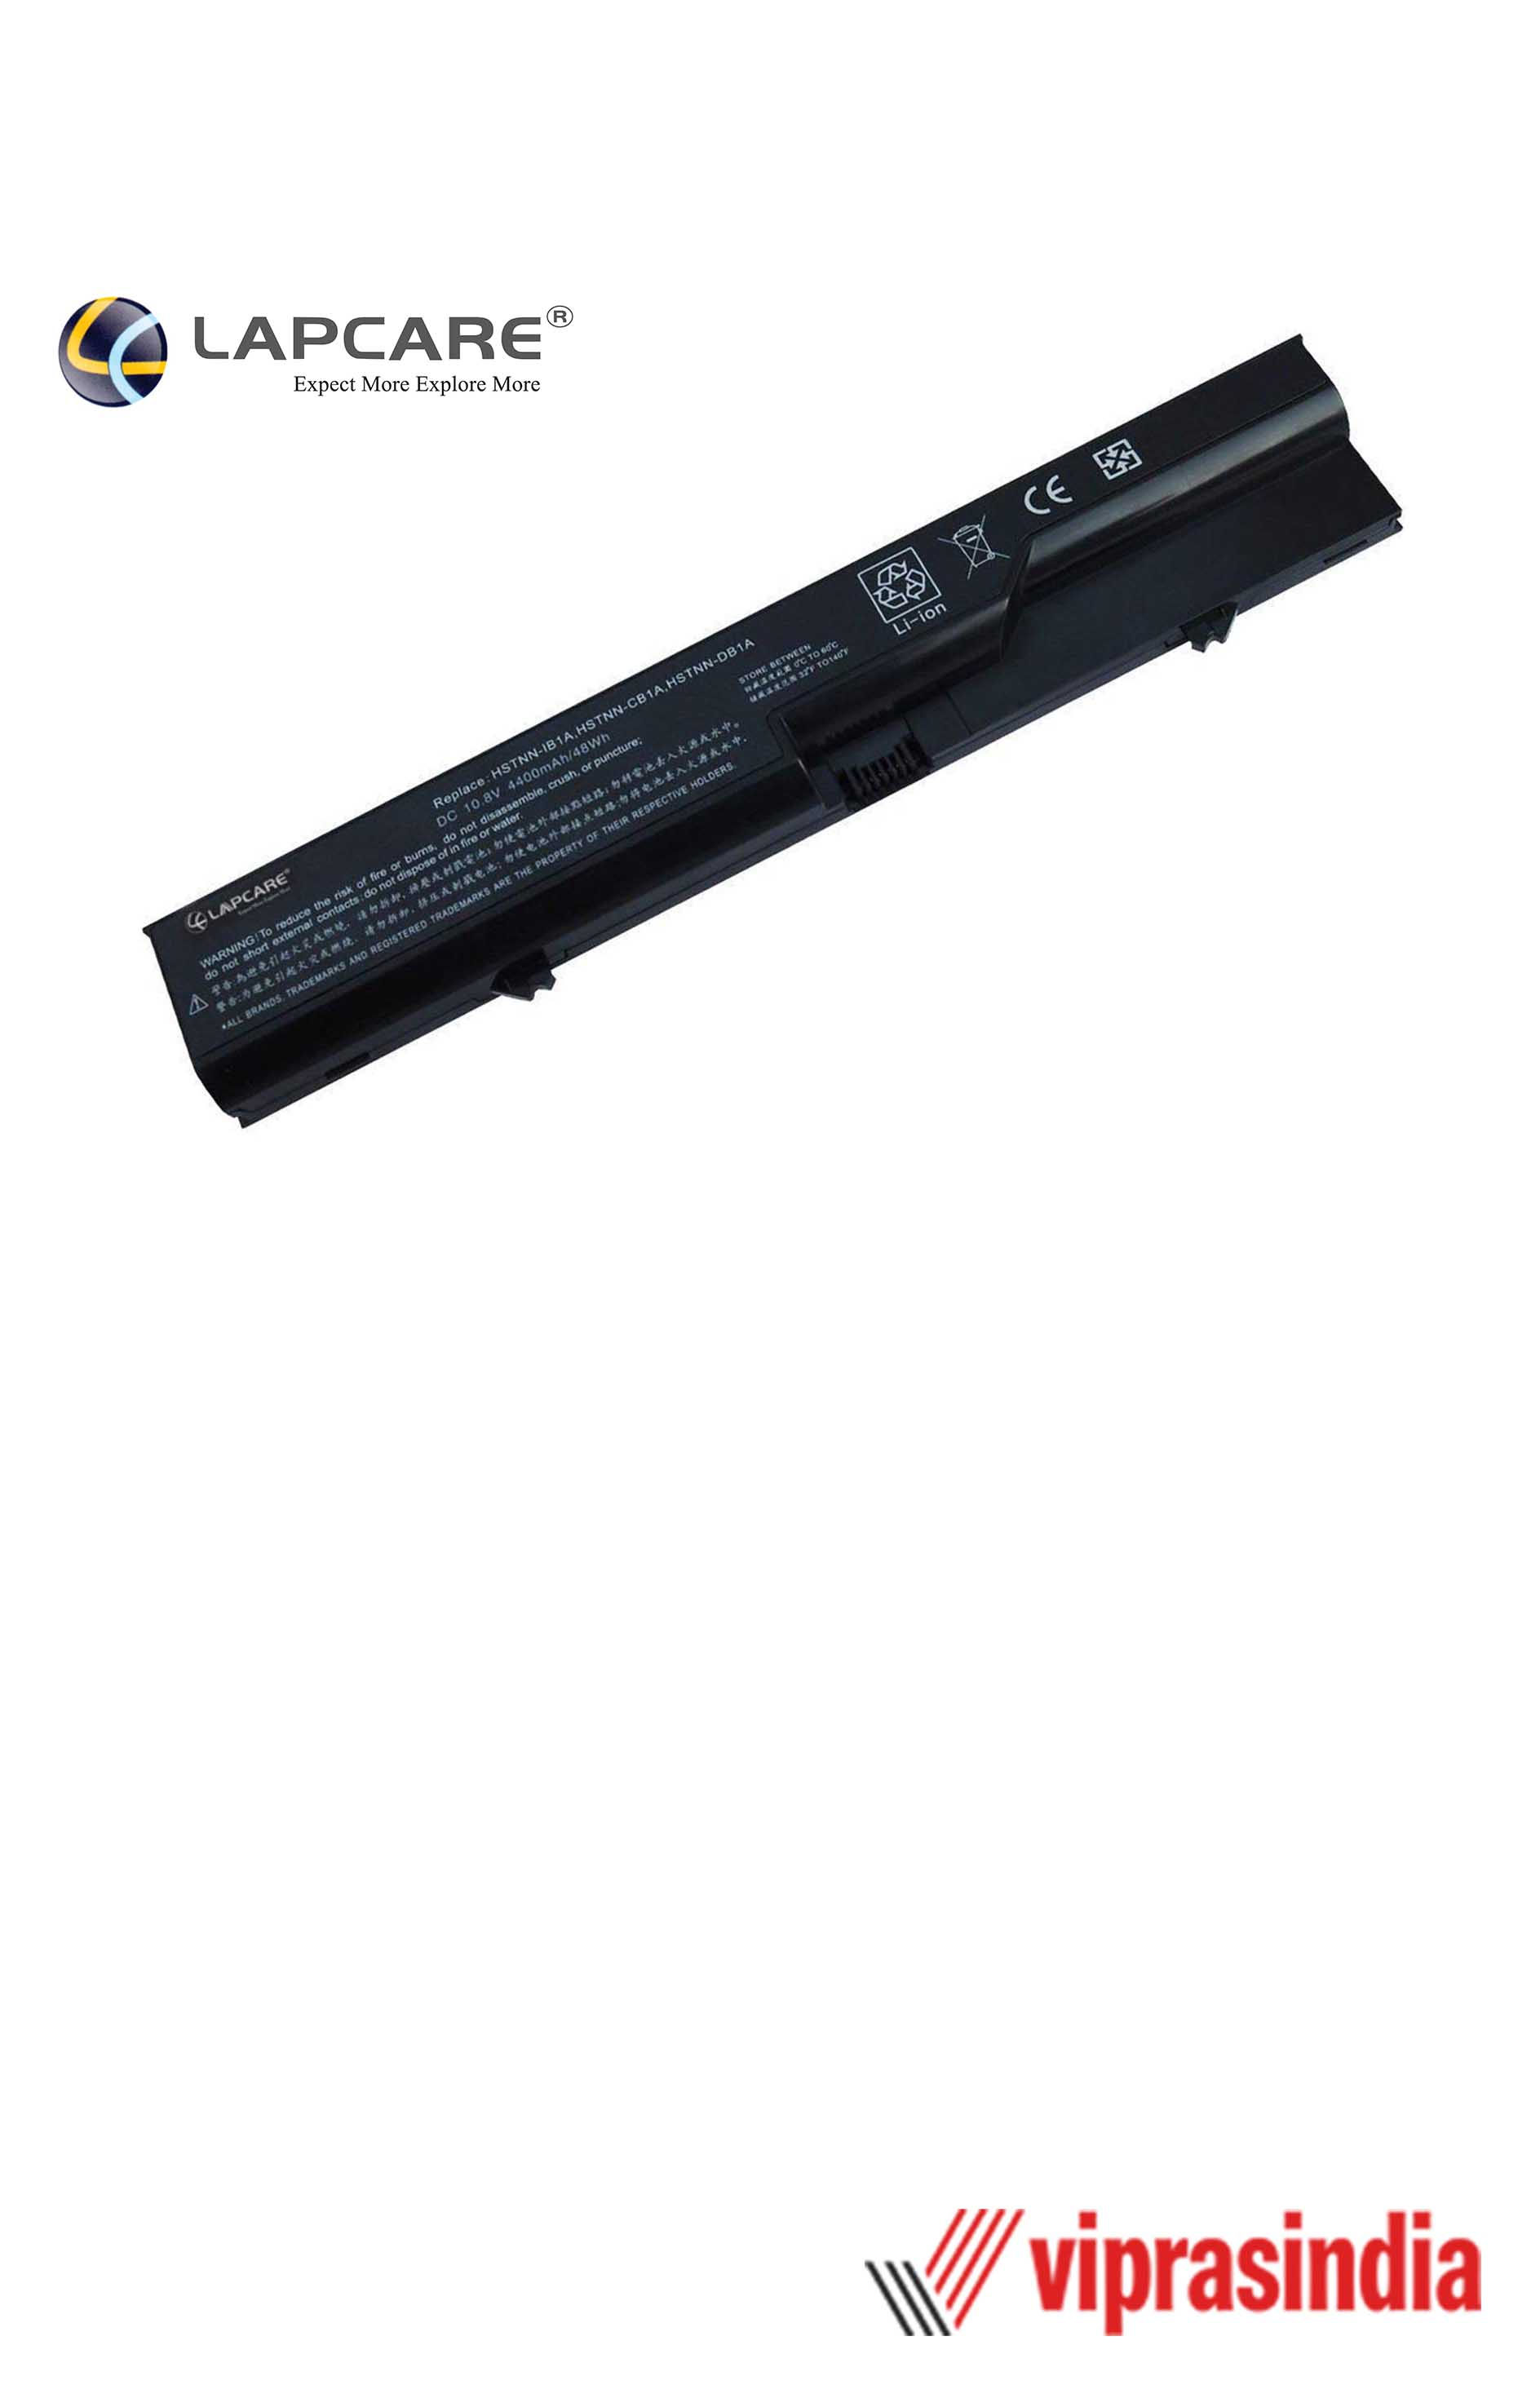 Laptop Battery Lapcare Compatible For Probook 4320s 6C